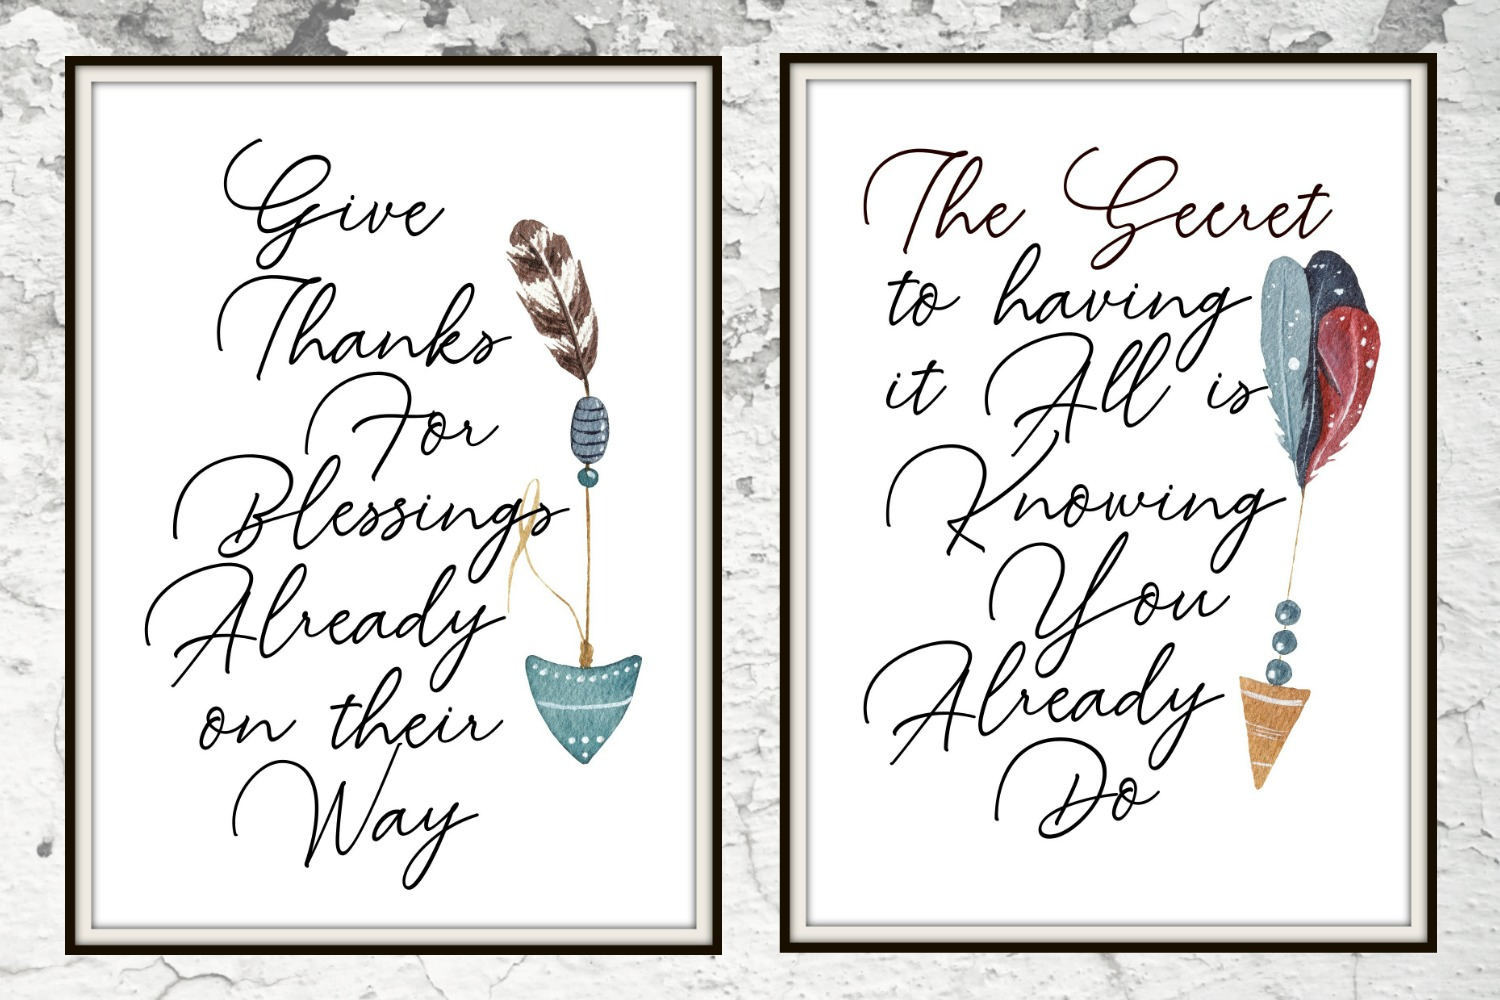 image regarding Native American Designs Printable titled Indigenous American Blessings - Cost-free Printable Artwork and Wallpaper